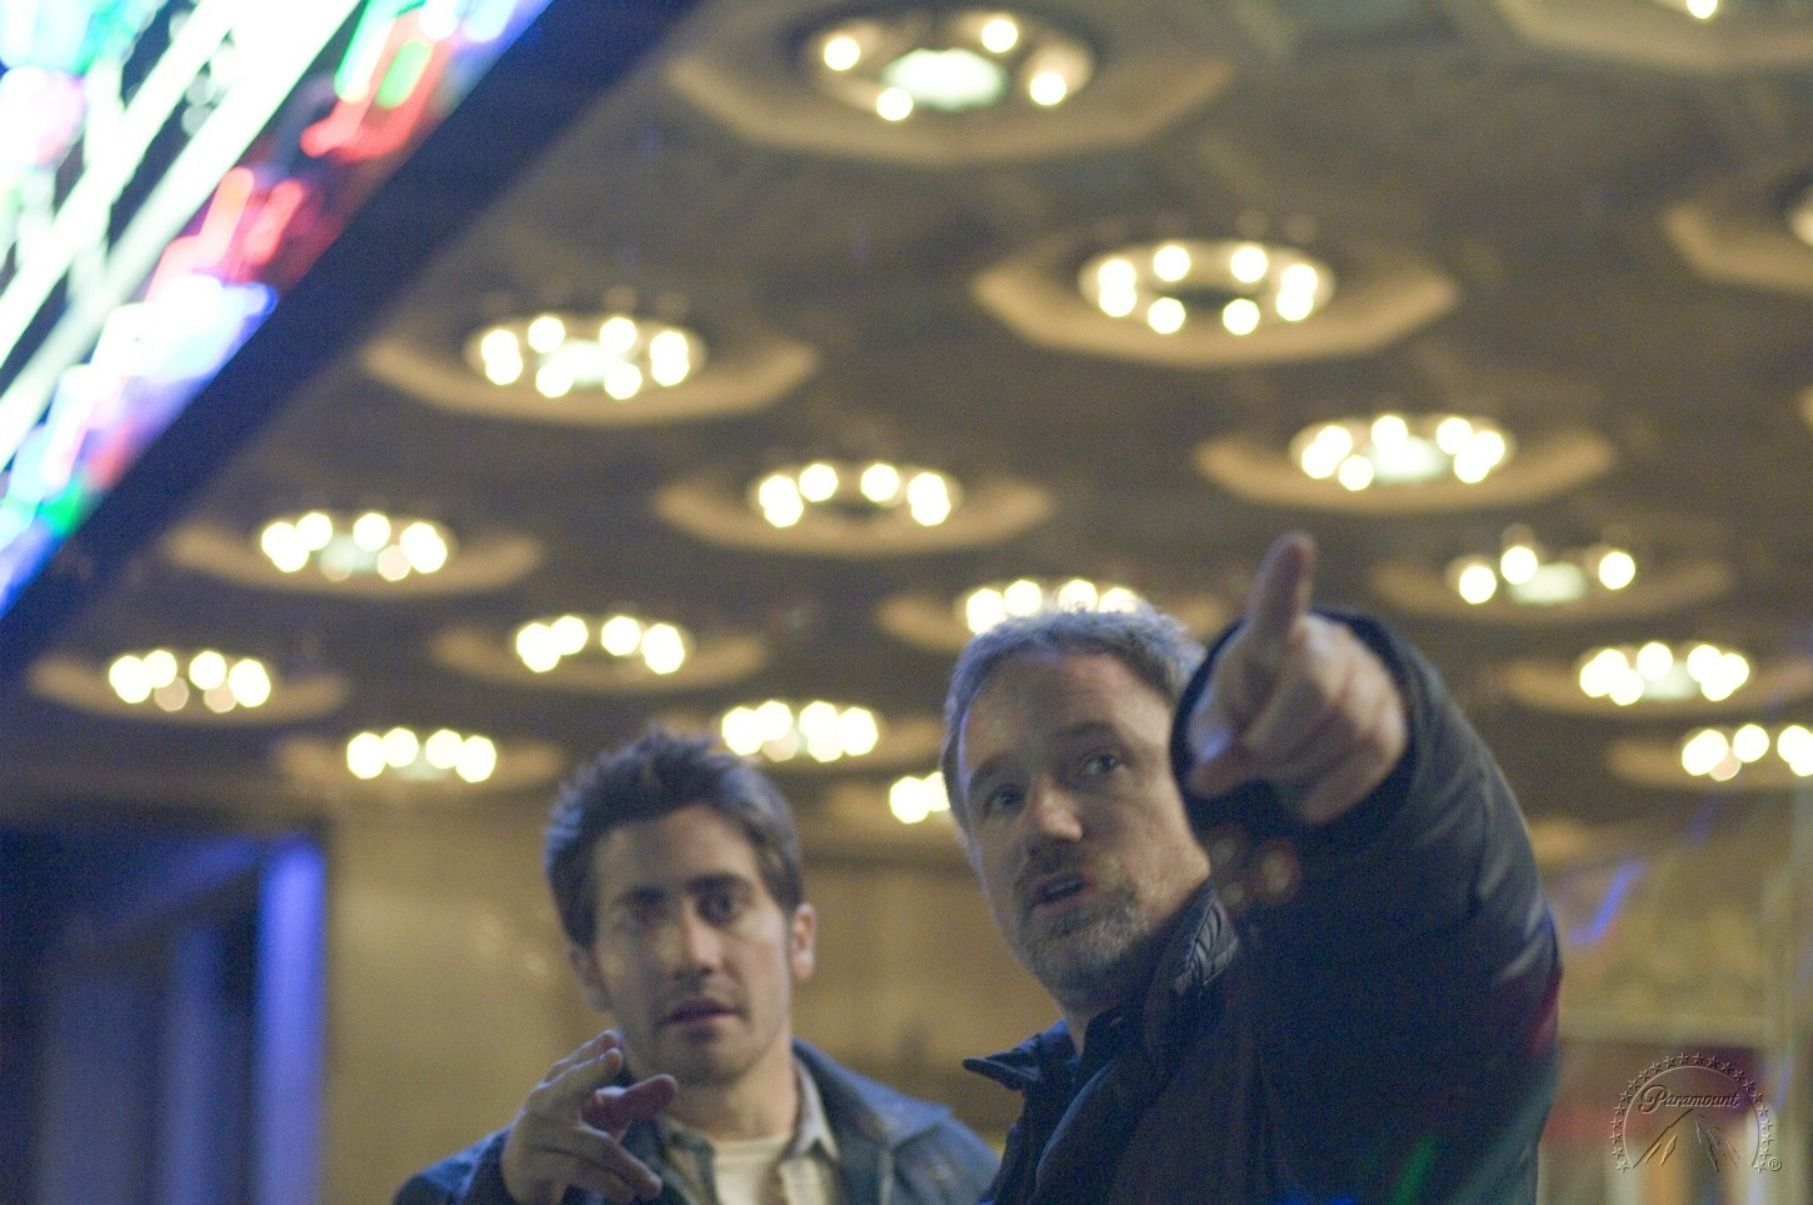 Fincher's 'Zodiac': A Suspenseful and Thrilling Combination of Police Procedural and Newspaper Film That Masterfully Chronicles the Progression of Obsession